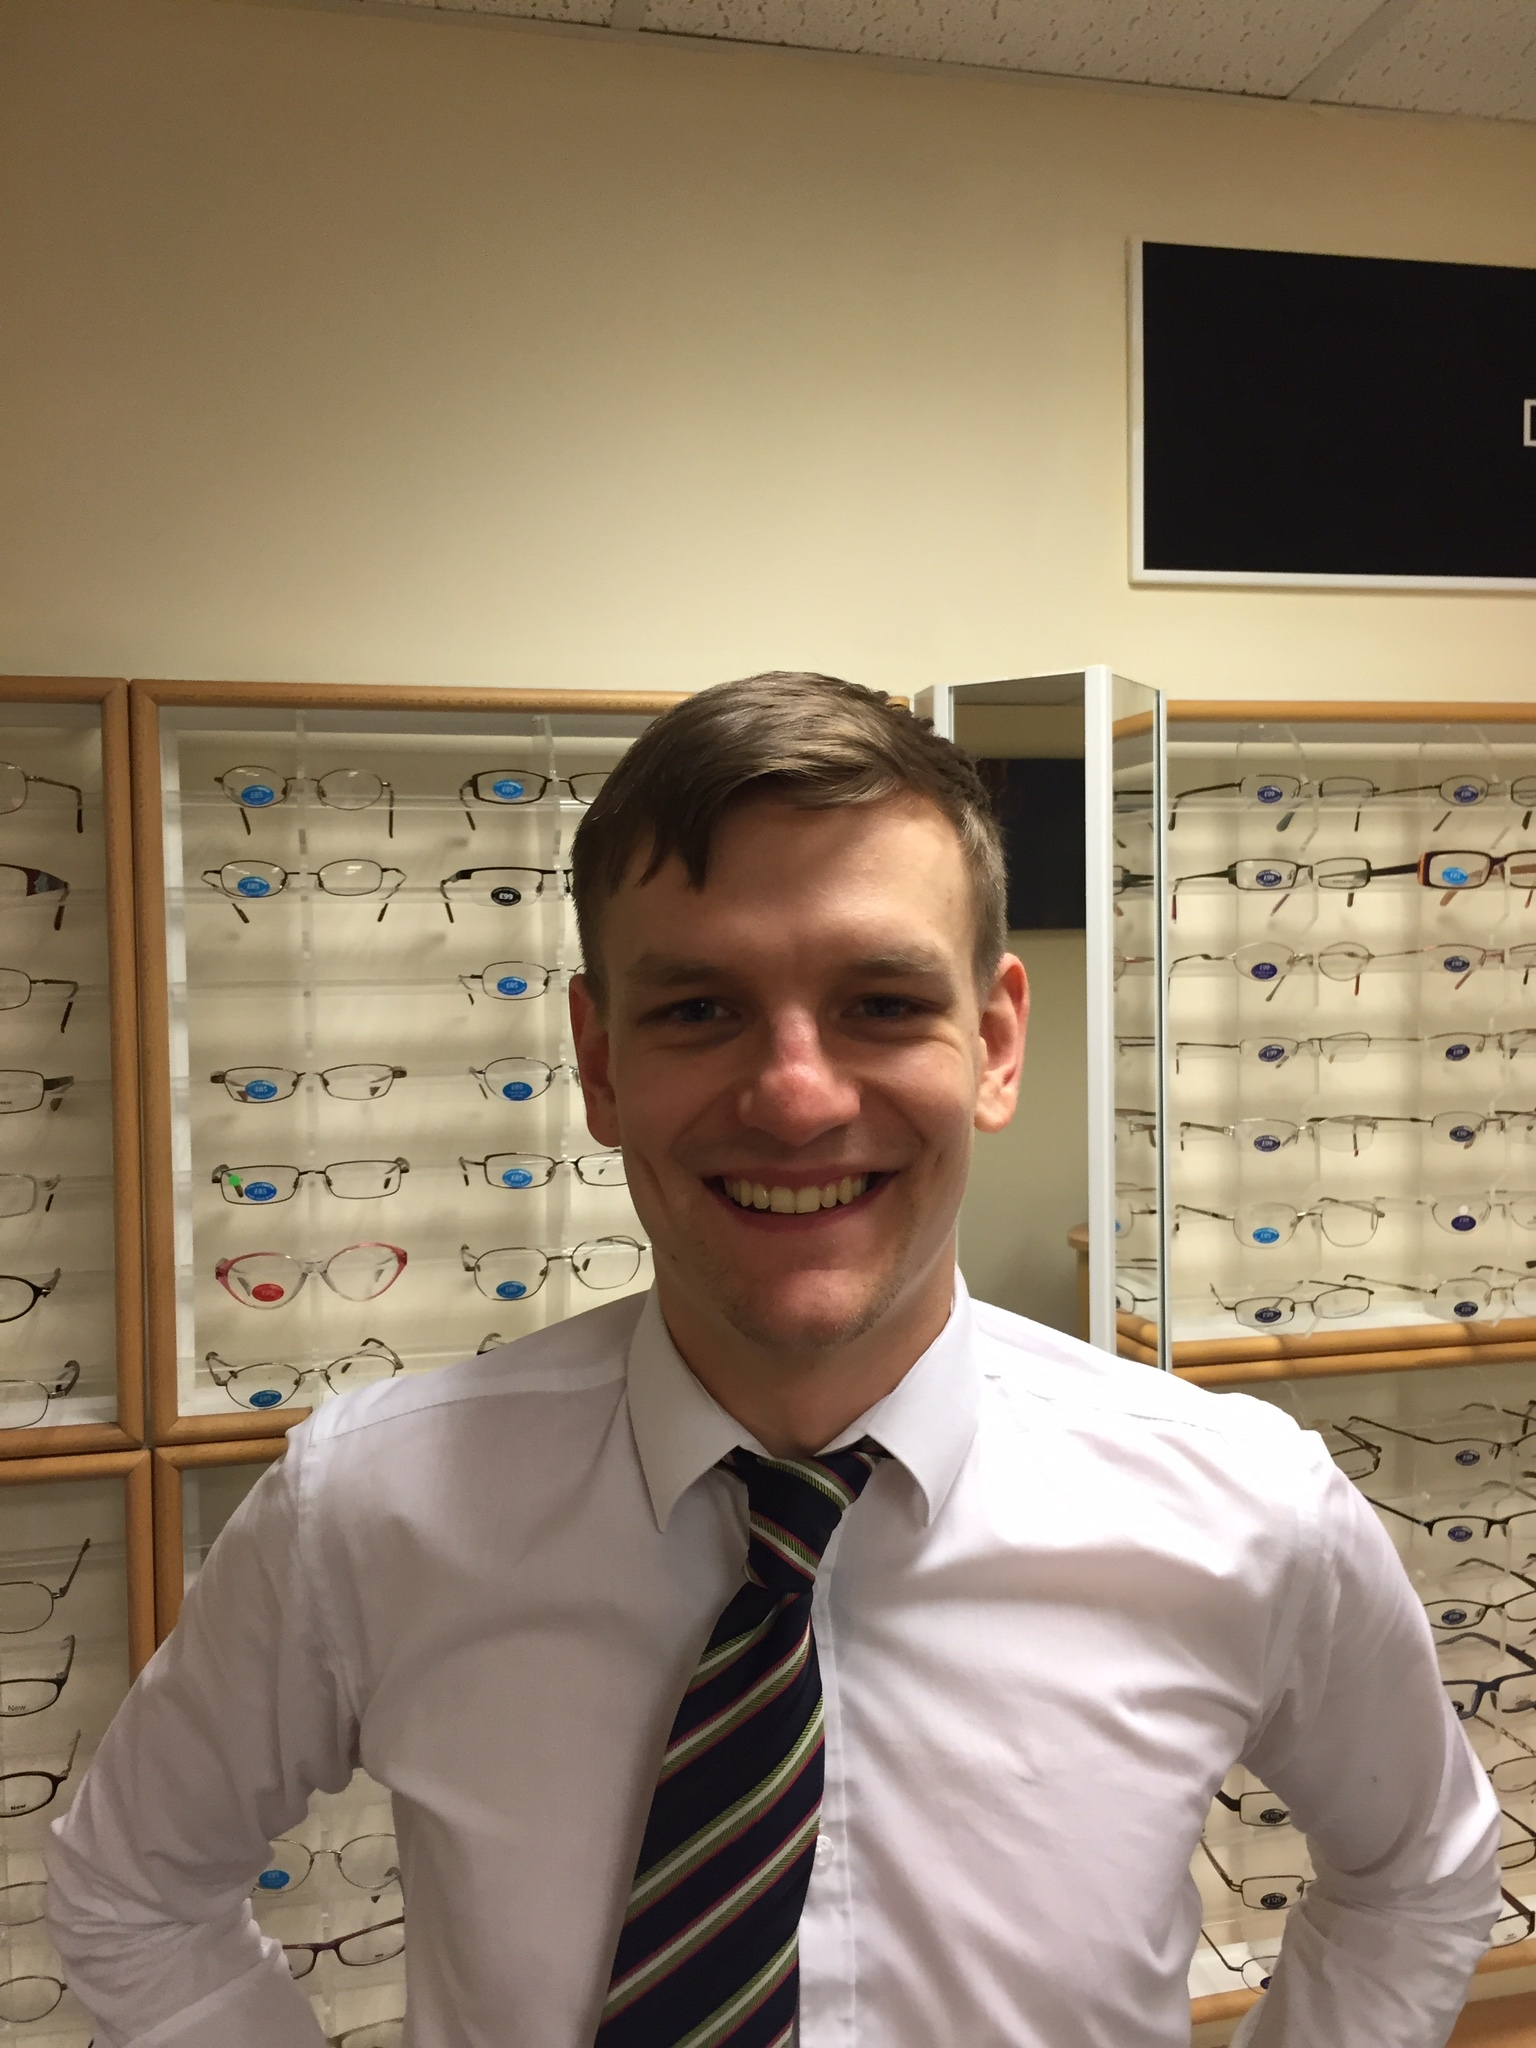 Artiom is a hearing aid audiologist at Specsavers Gravesend